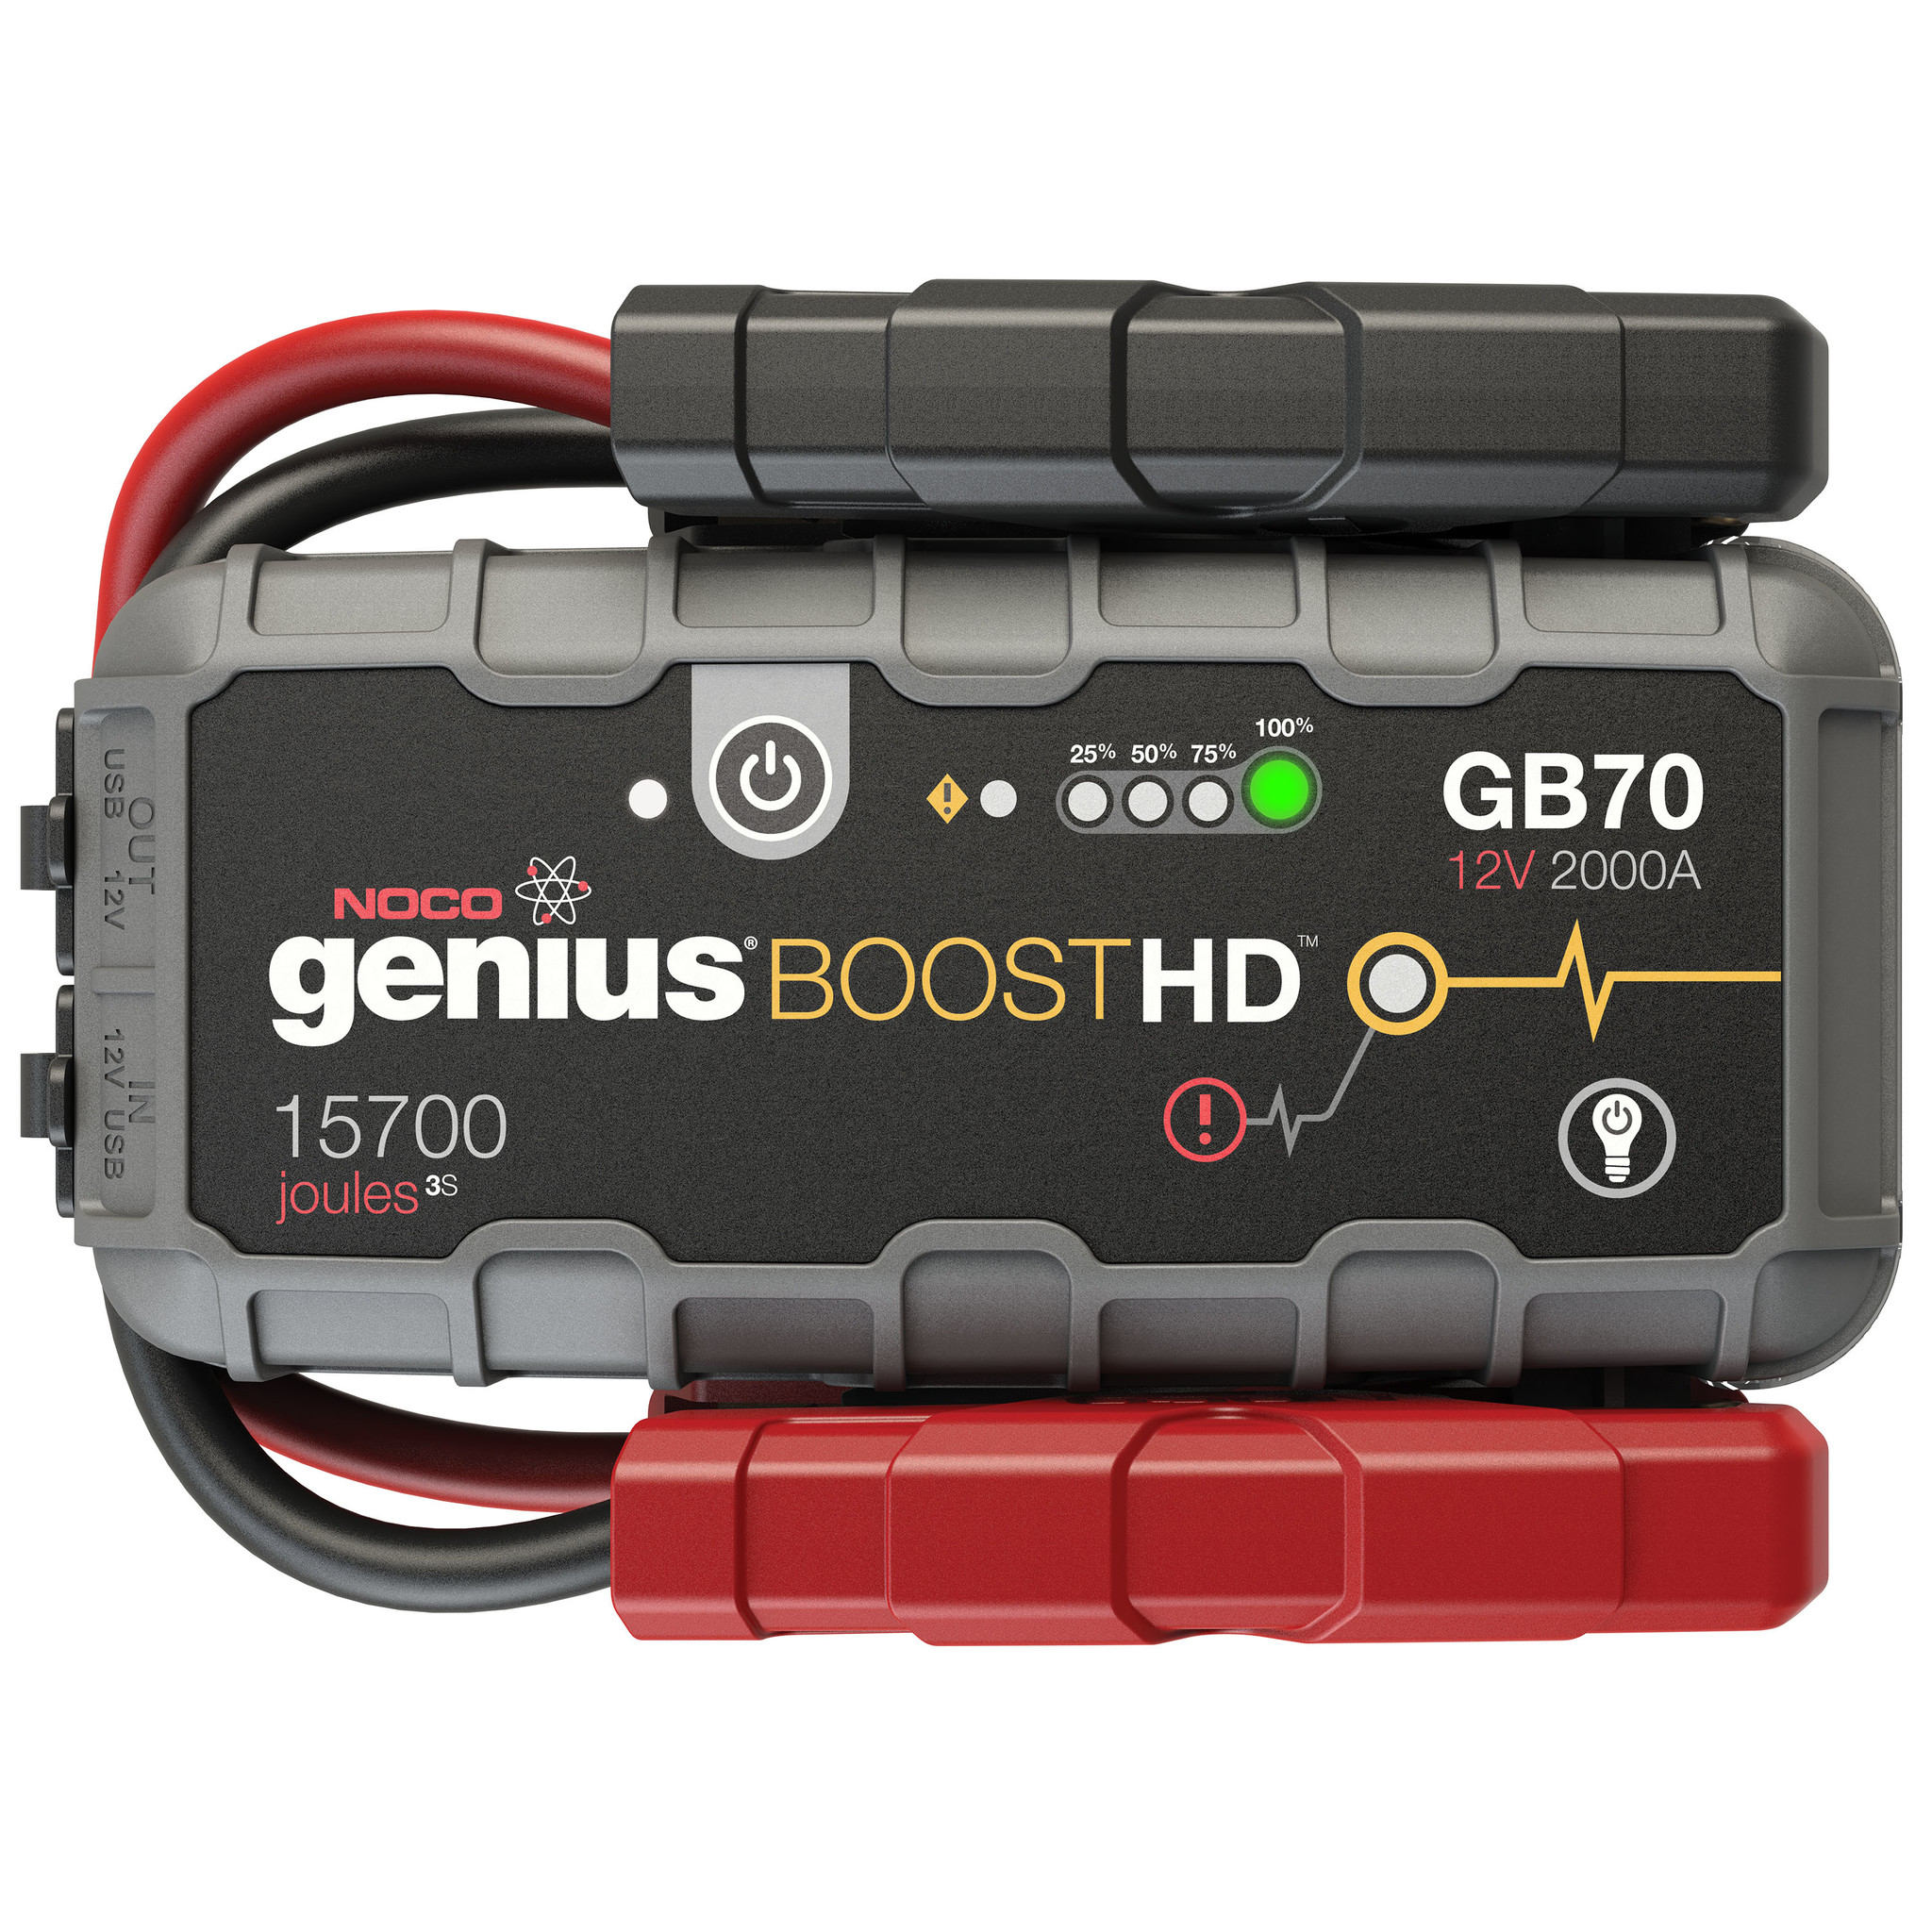 GB70 Jumpstarter 2000A